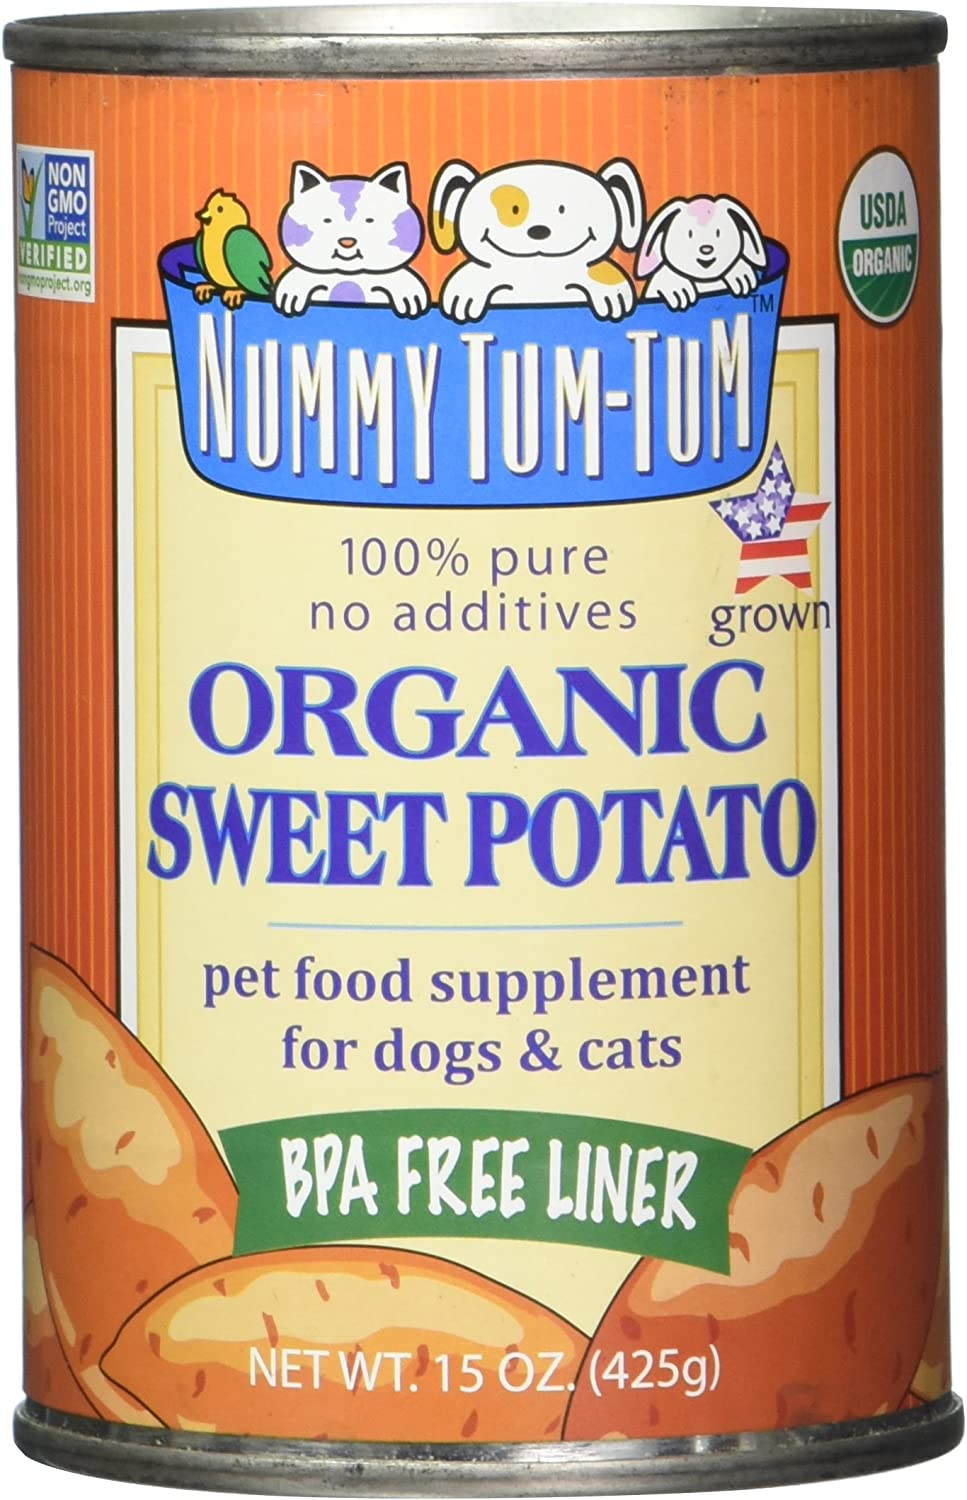 Nummy Tum Tum Organic Canned Dog Food